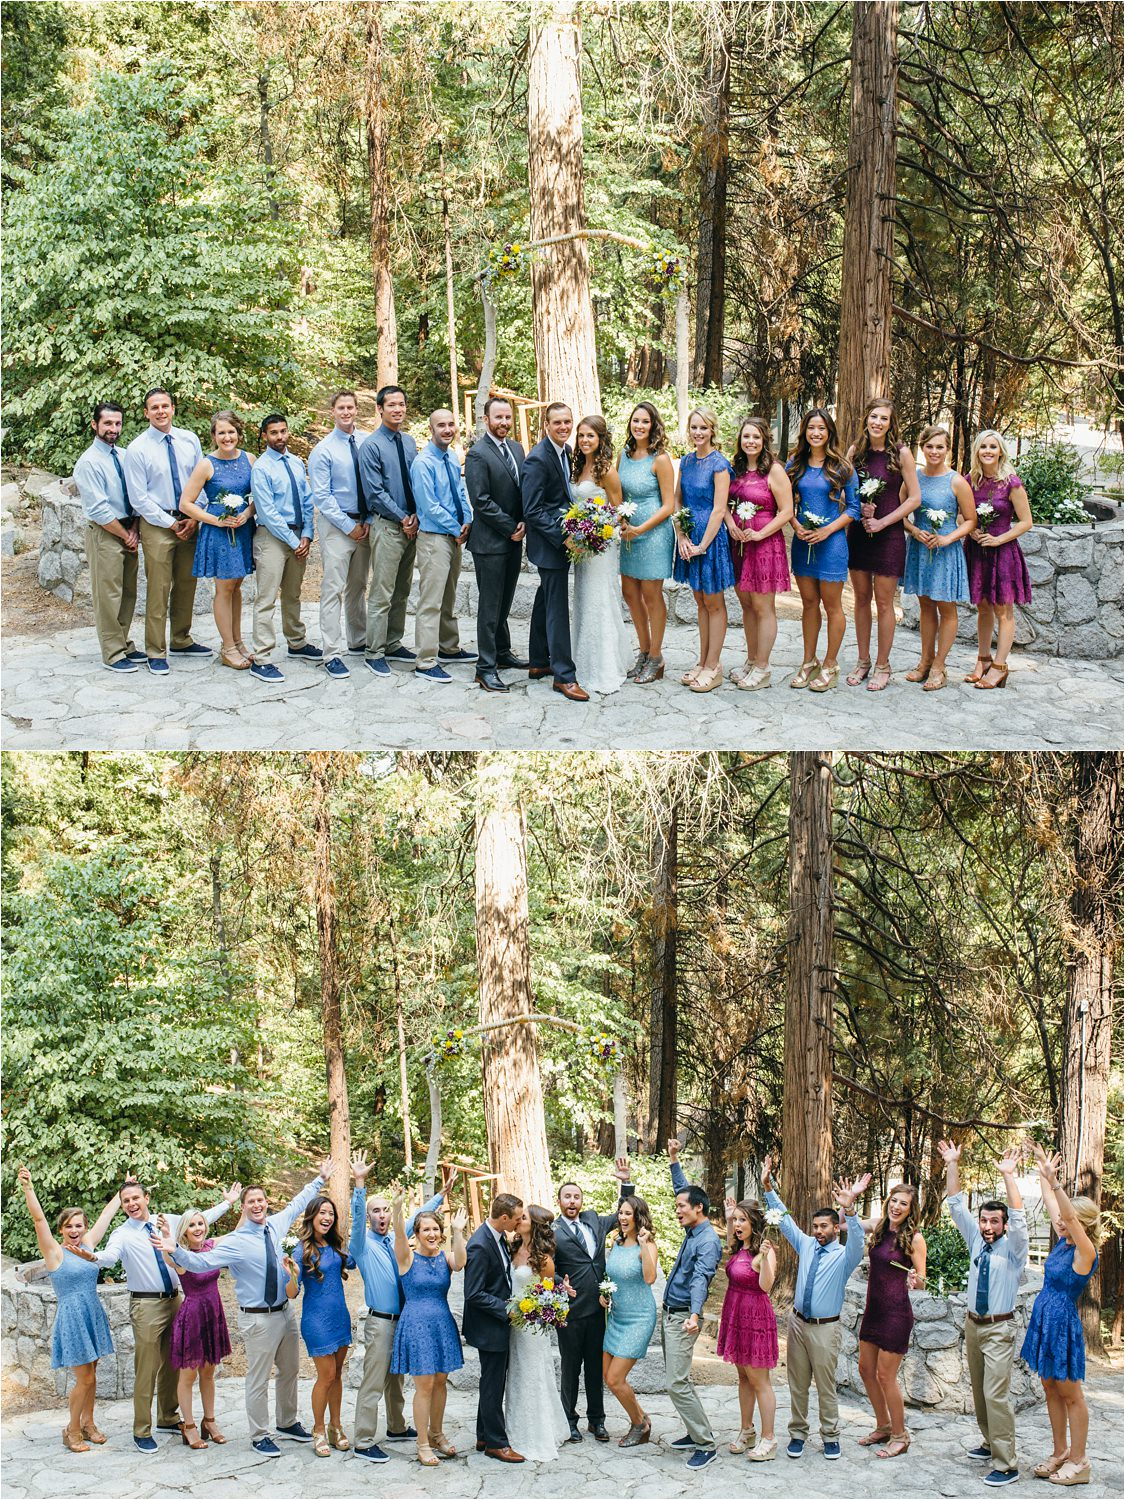 Bridal Party Photos in the Mountains - Best Friends - https://brittneyhannonphotography.com